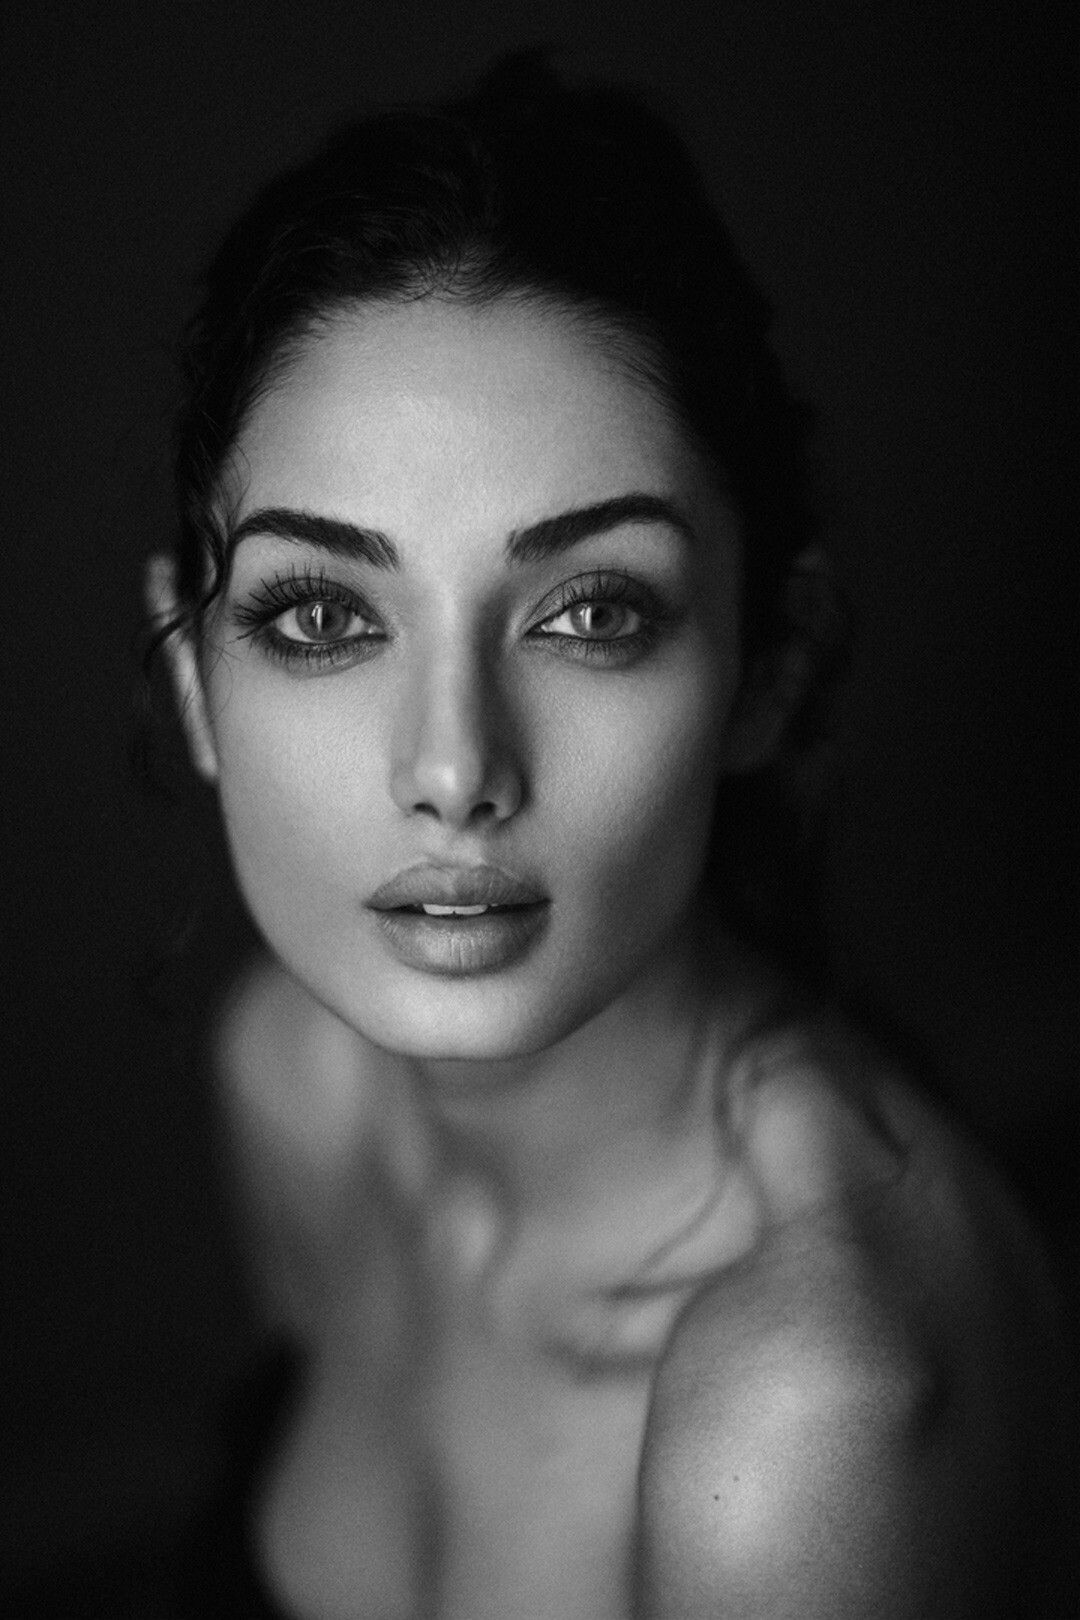 Rostro black and white portrait photography